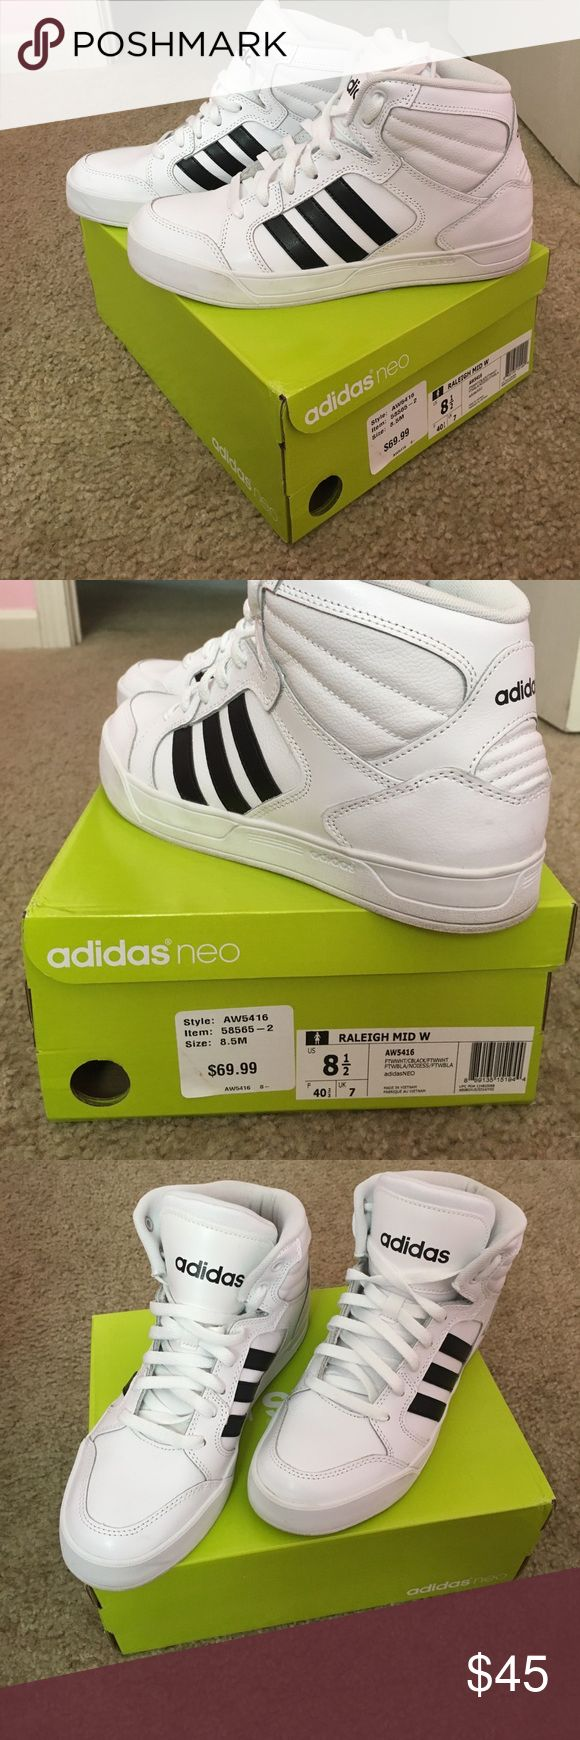 Adidas Neo High Tops Adidas Neo High Tops adidas Shoes Sneakers